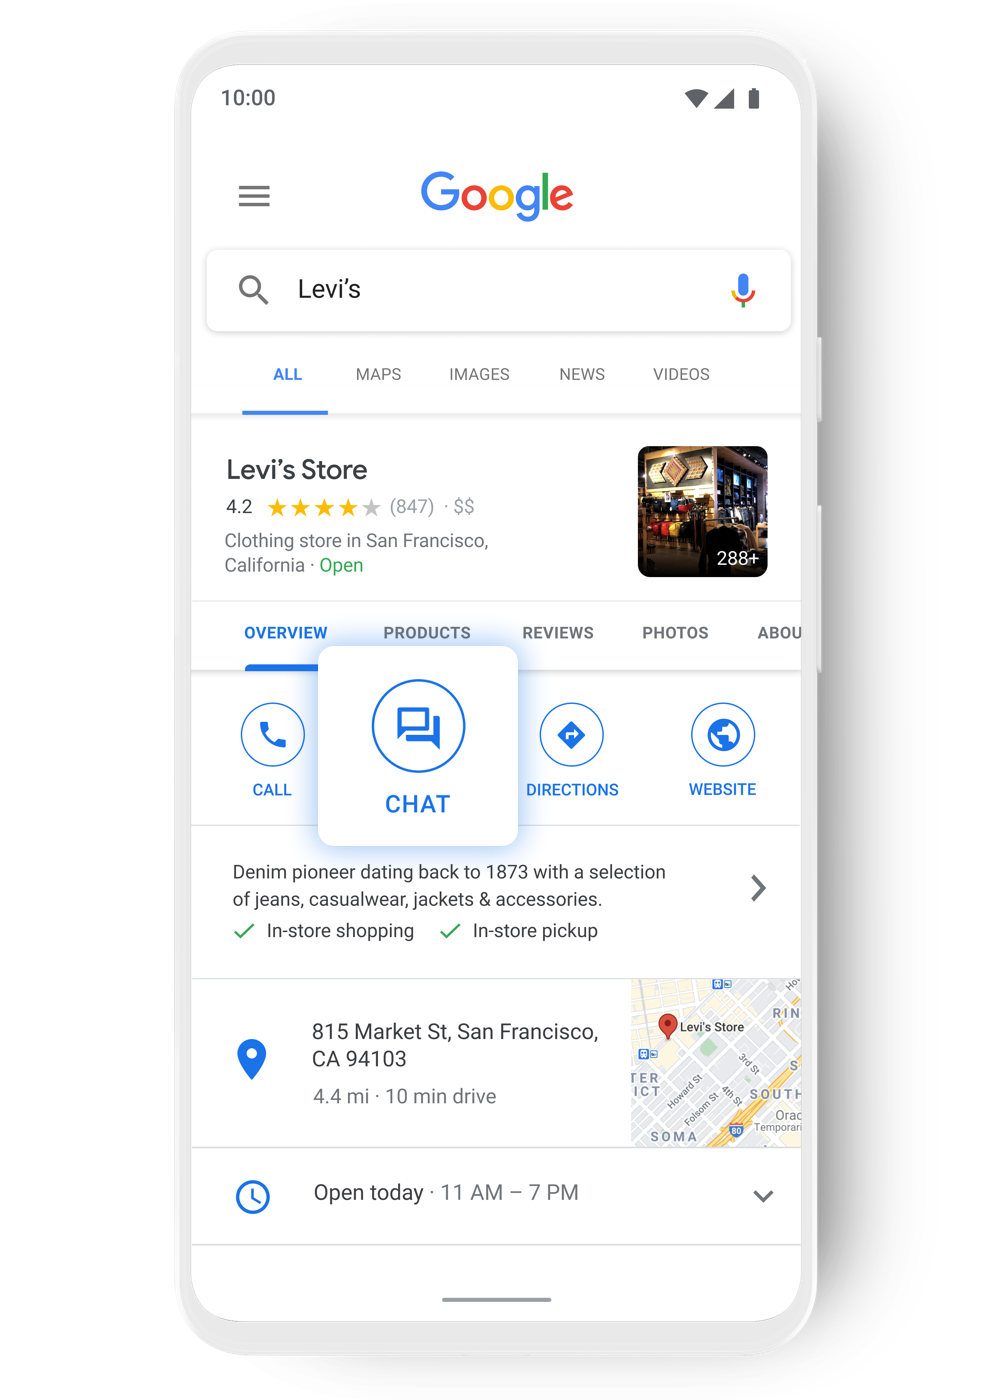 Customers chat with Levi's through Google Search